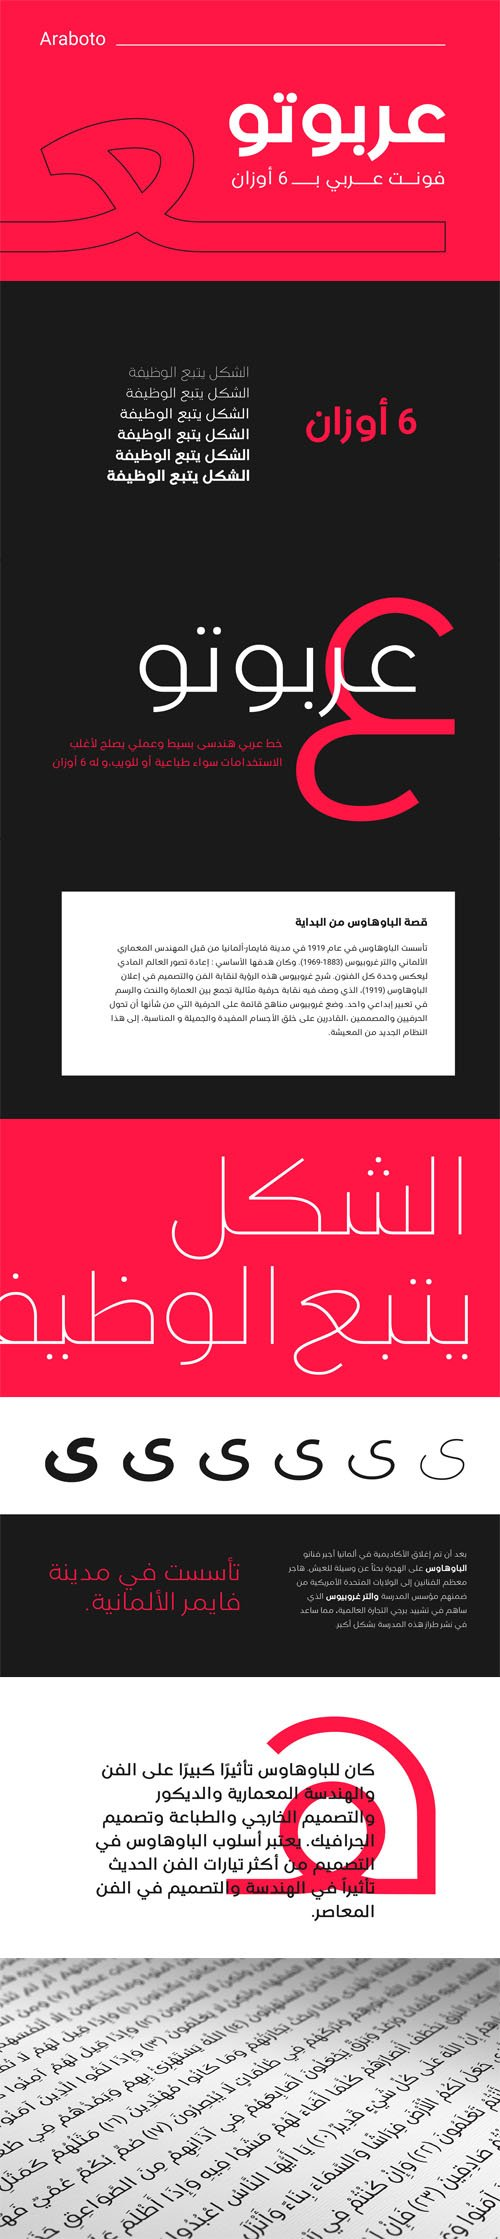 Araboto Arabic Font Family [6-Weights]